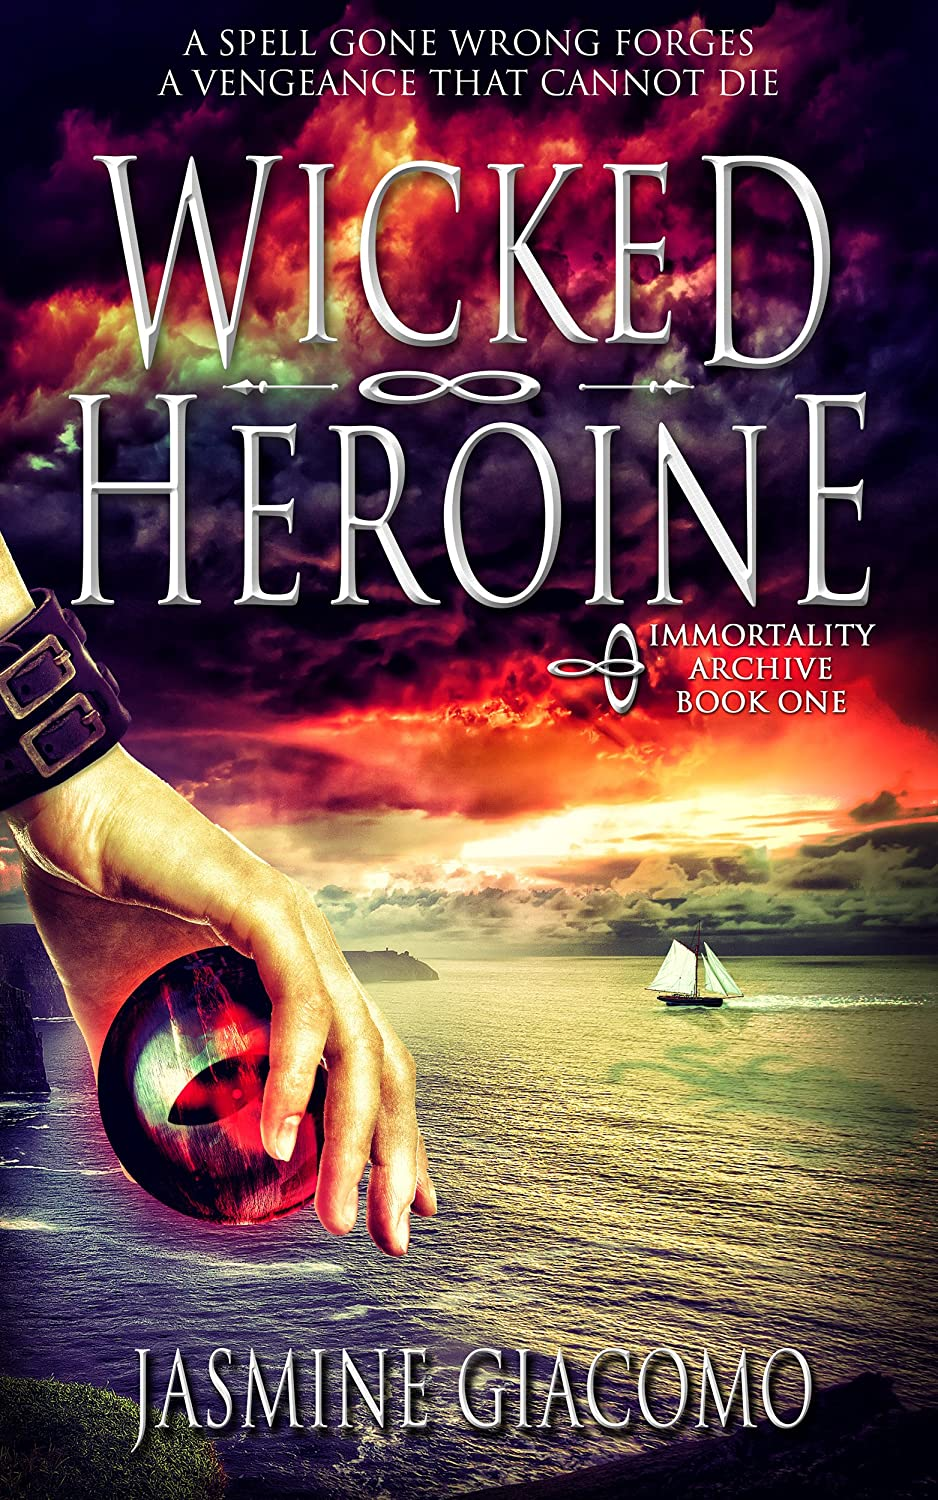 The Wicked Heroine